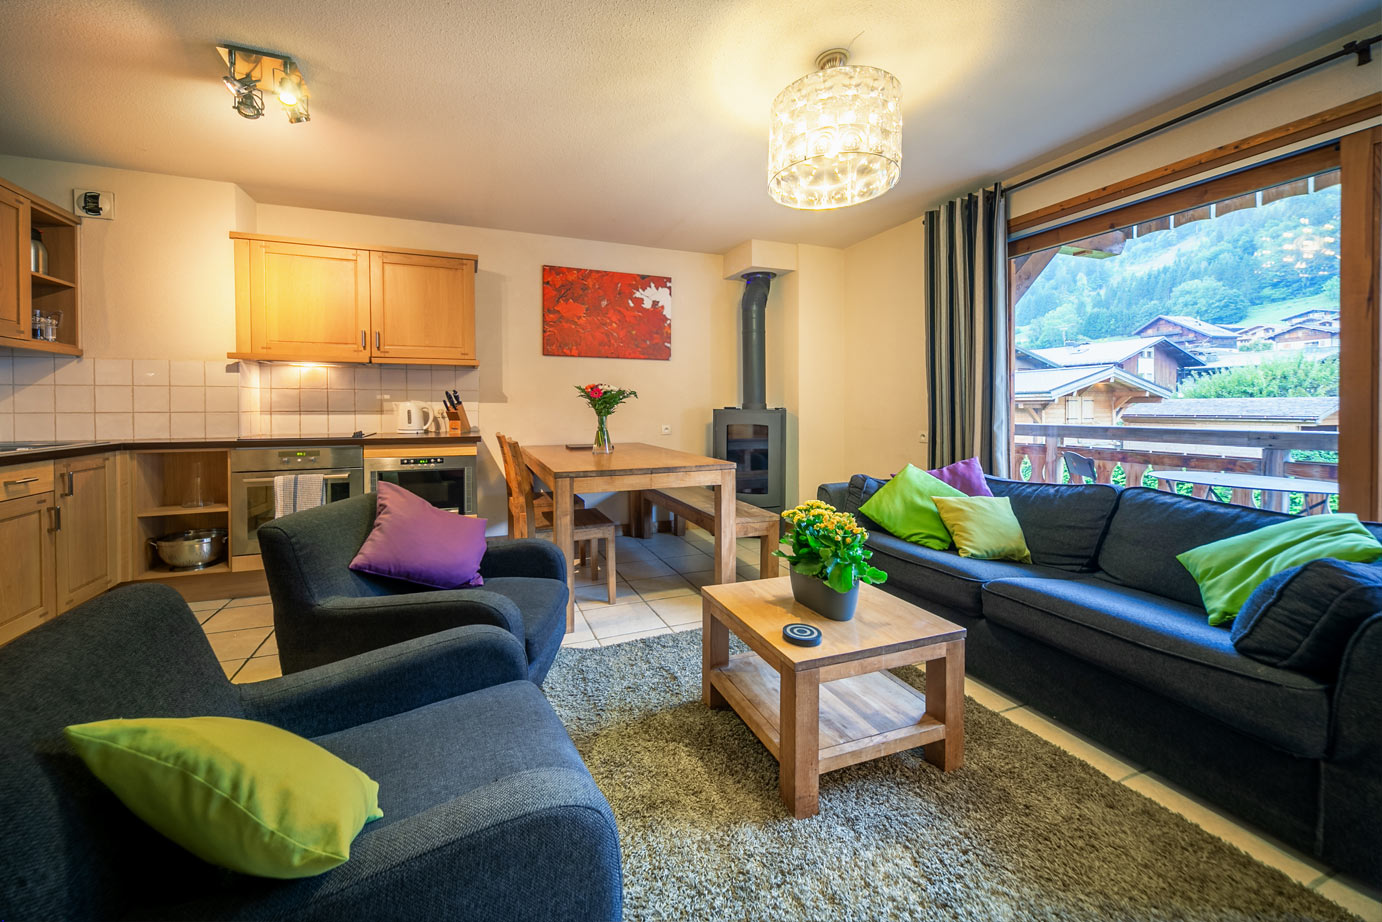 Image of a 3 Bedroom Apartment in Morzine